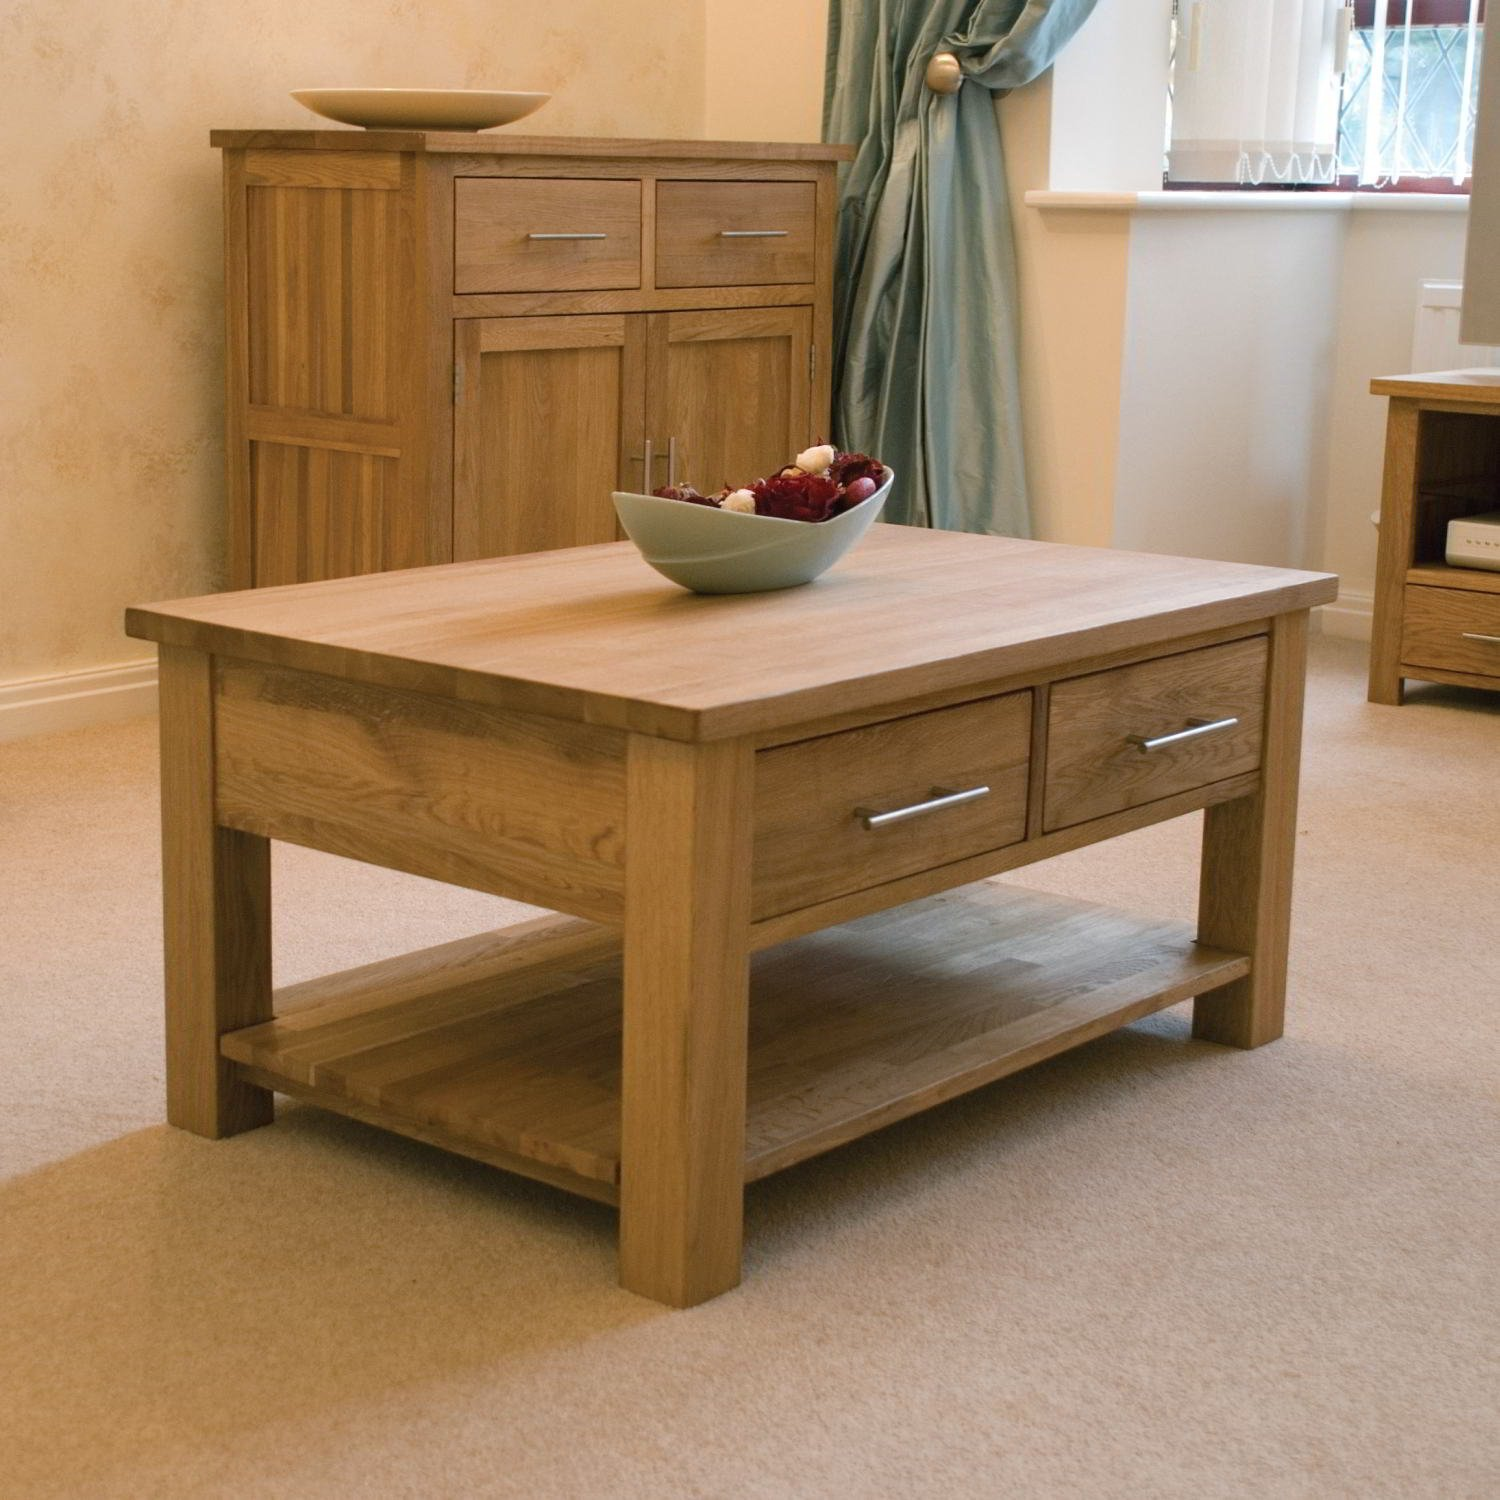 Eton Solid Oak Furniture Storage Coffee Table With Drawers: Amazon.co.uk:  Kitchen U0026 Home Part 47